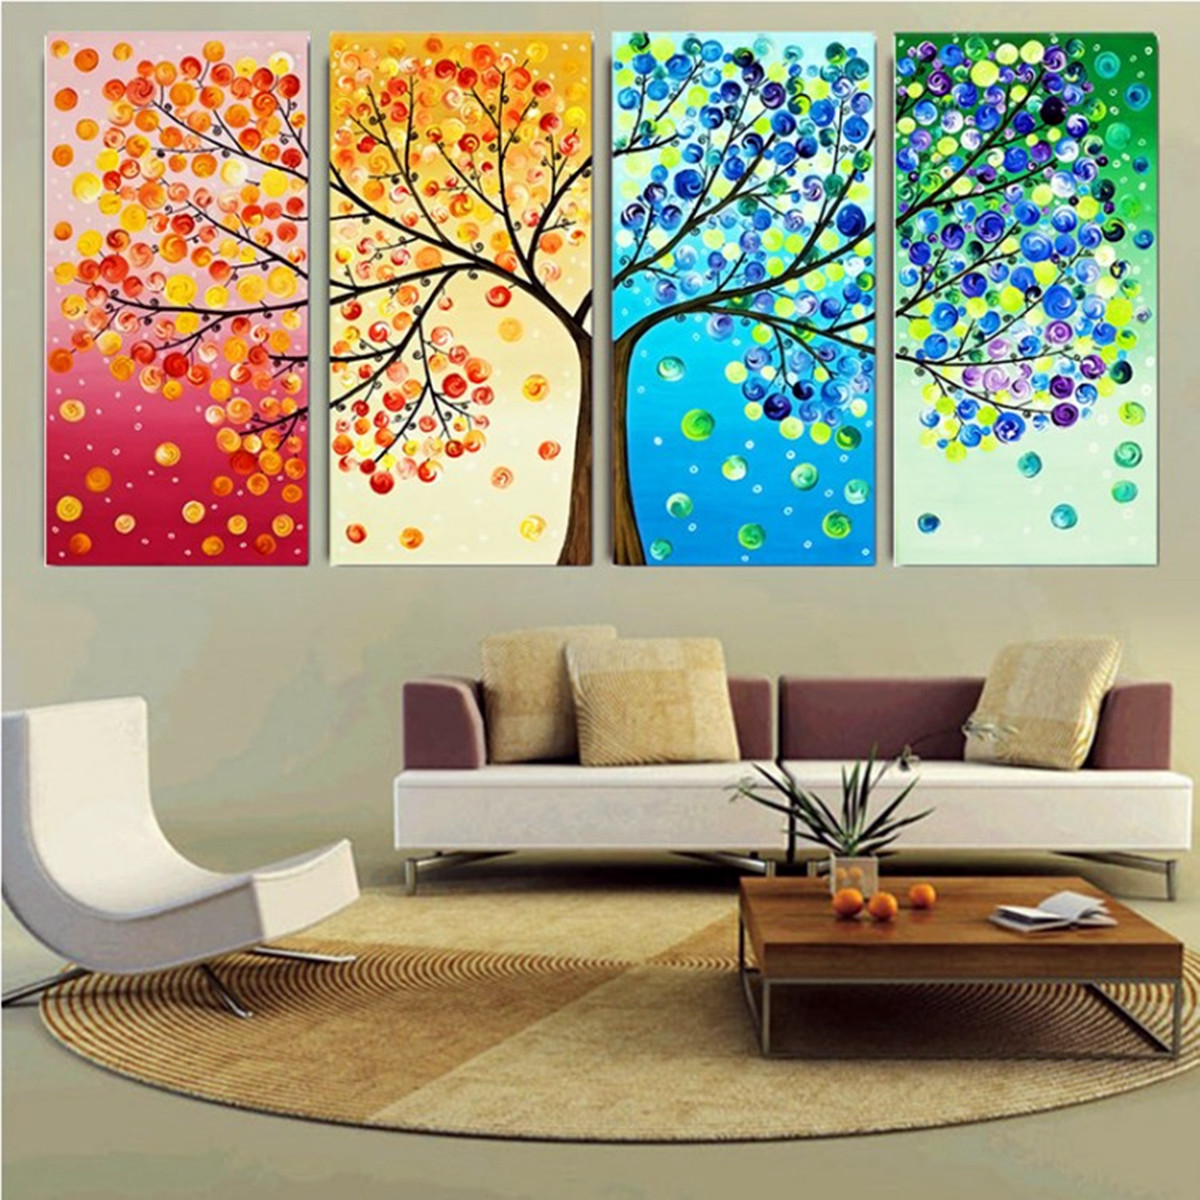 Diy handmade colorful season tree counted cross stitch for Home decoration photos